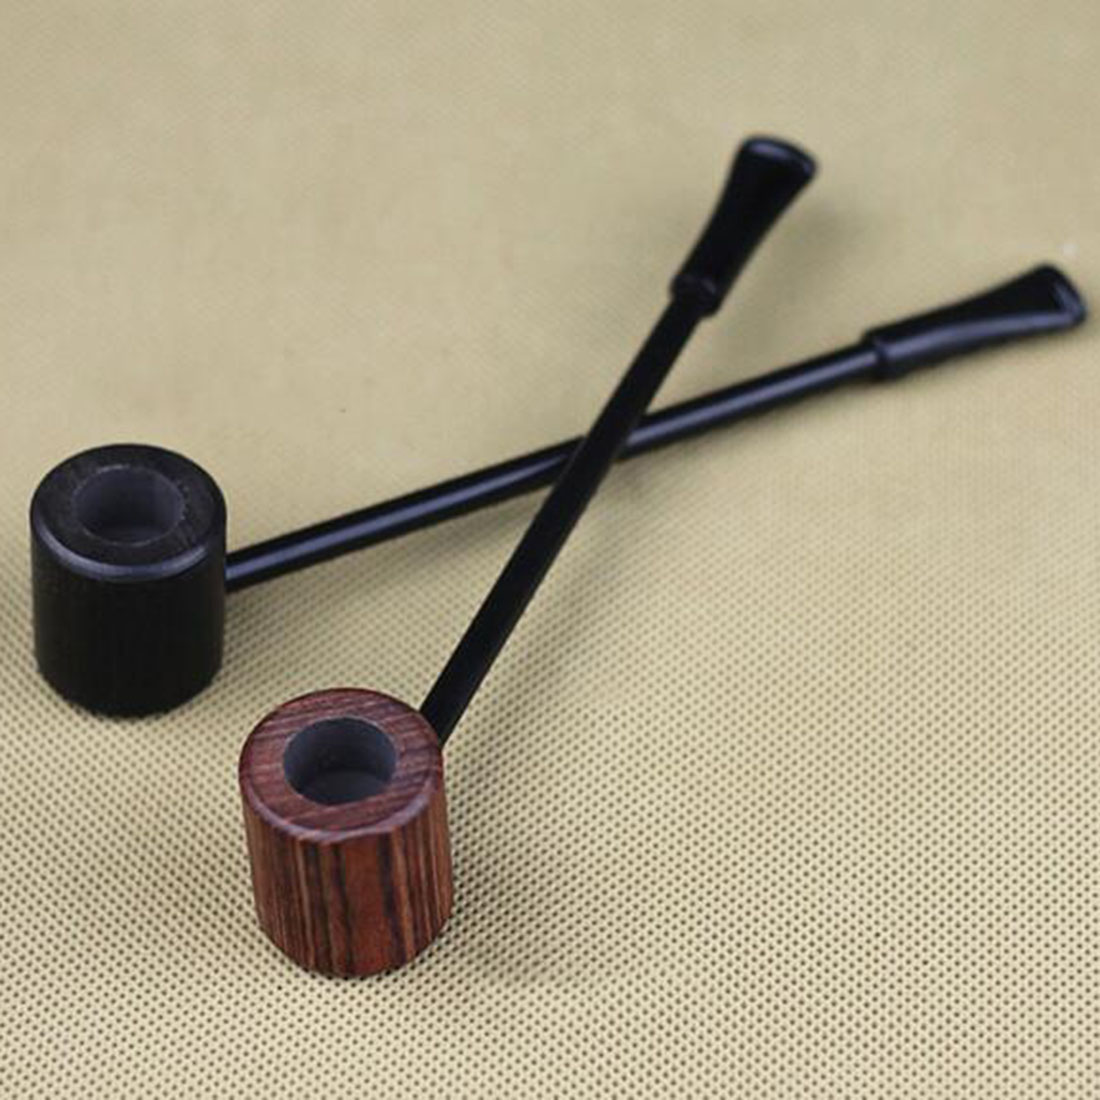 2018 New High Quality Grade Fashion Long Ebony Wood Smoking Pipes Popeye Tobacco Cigarettes Cigar Pipes